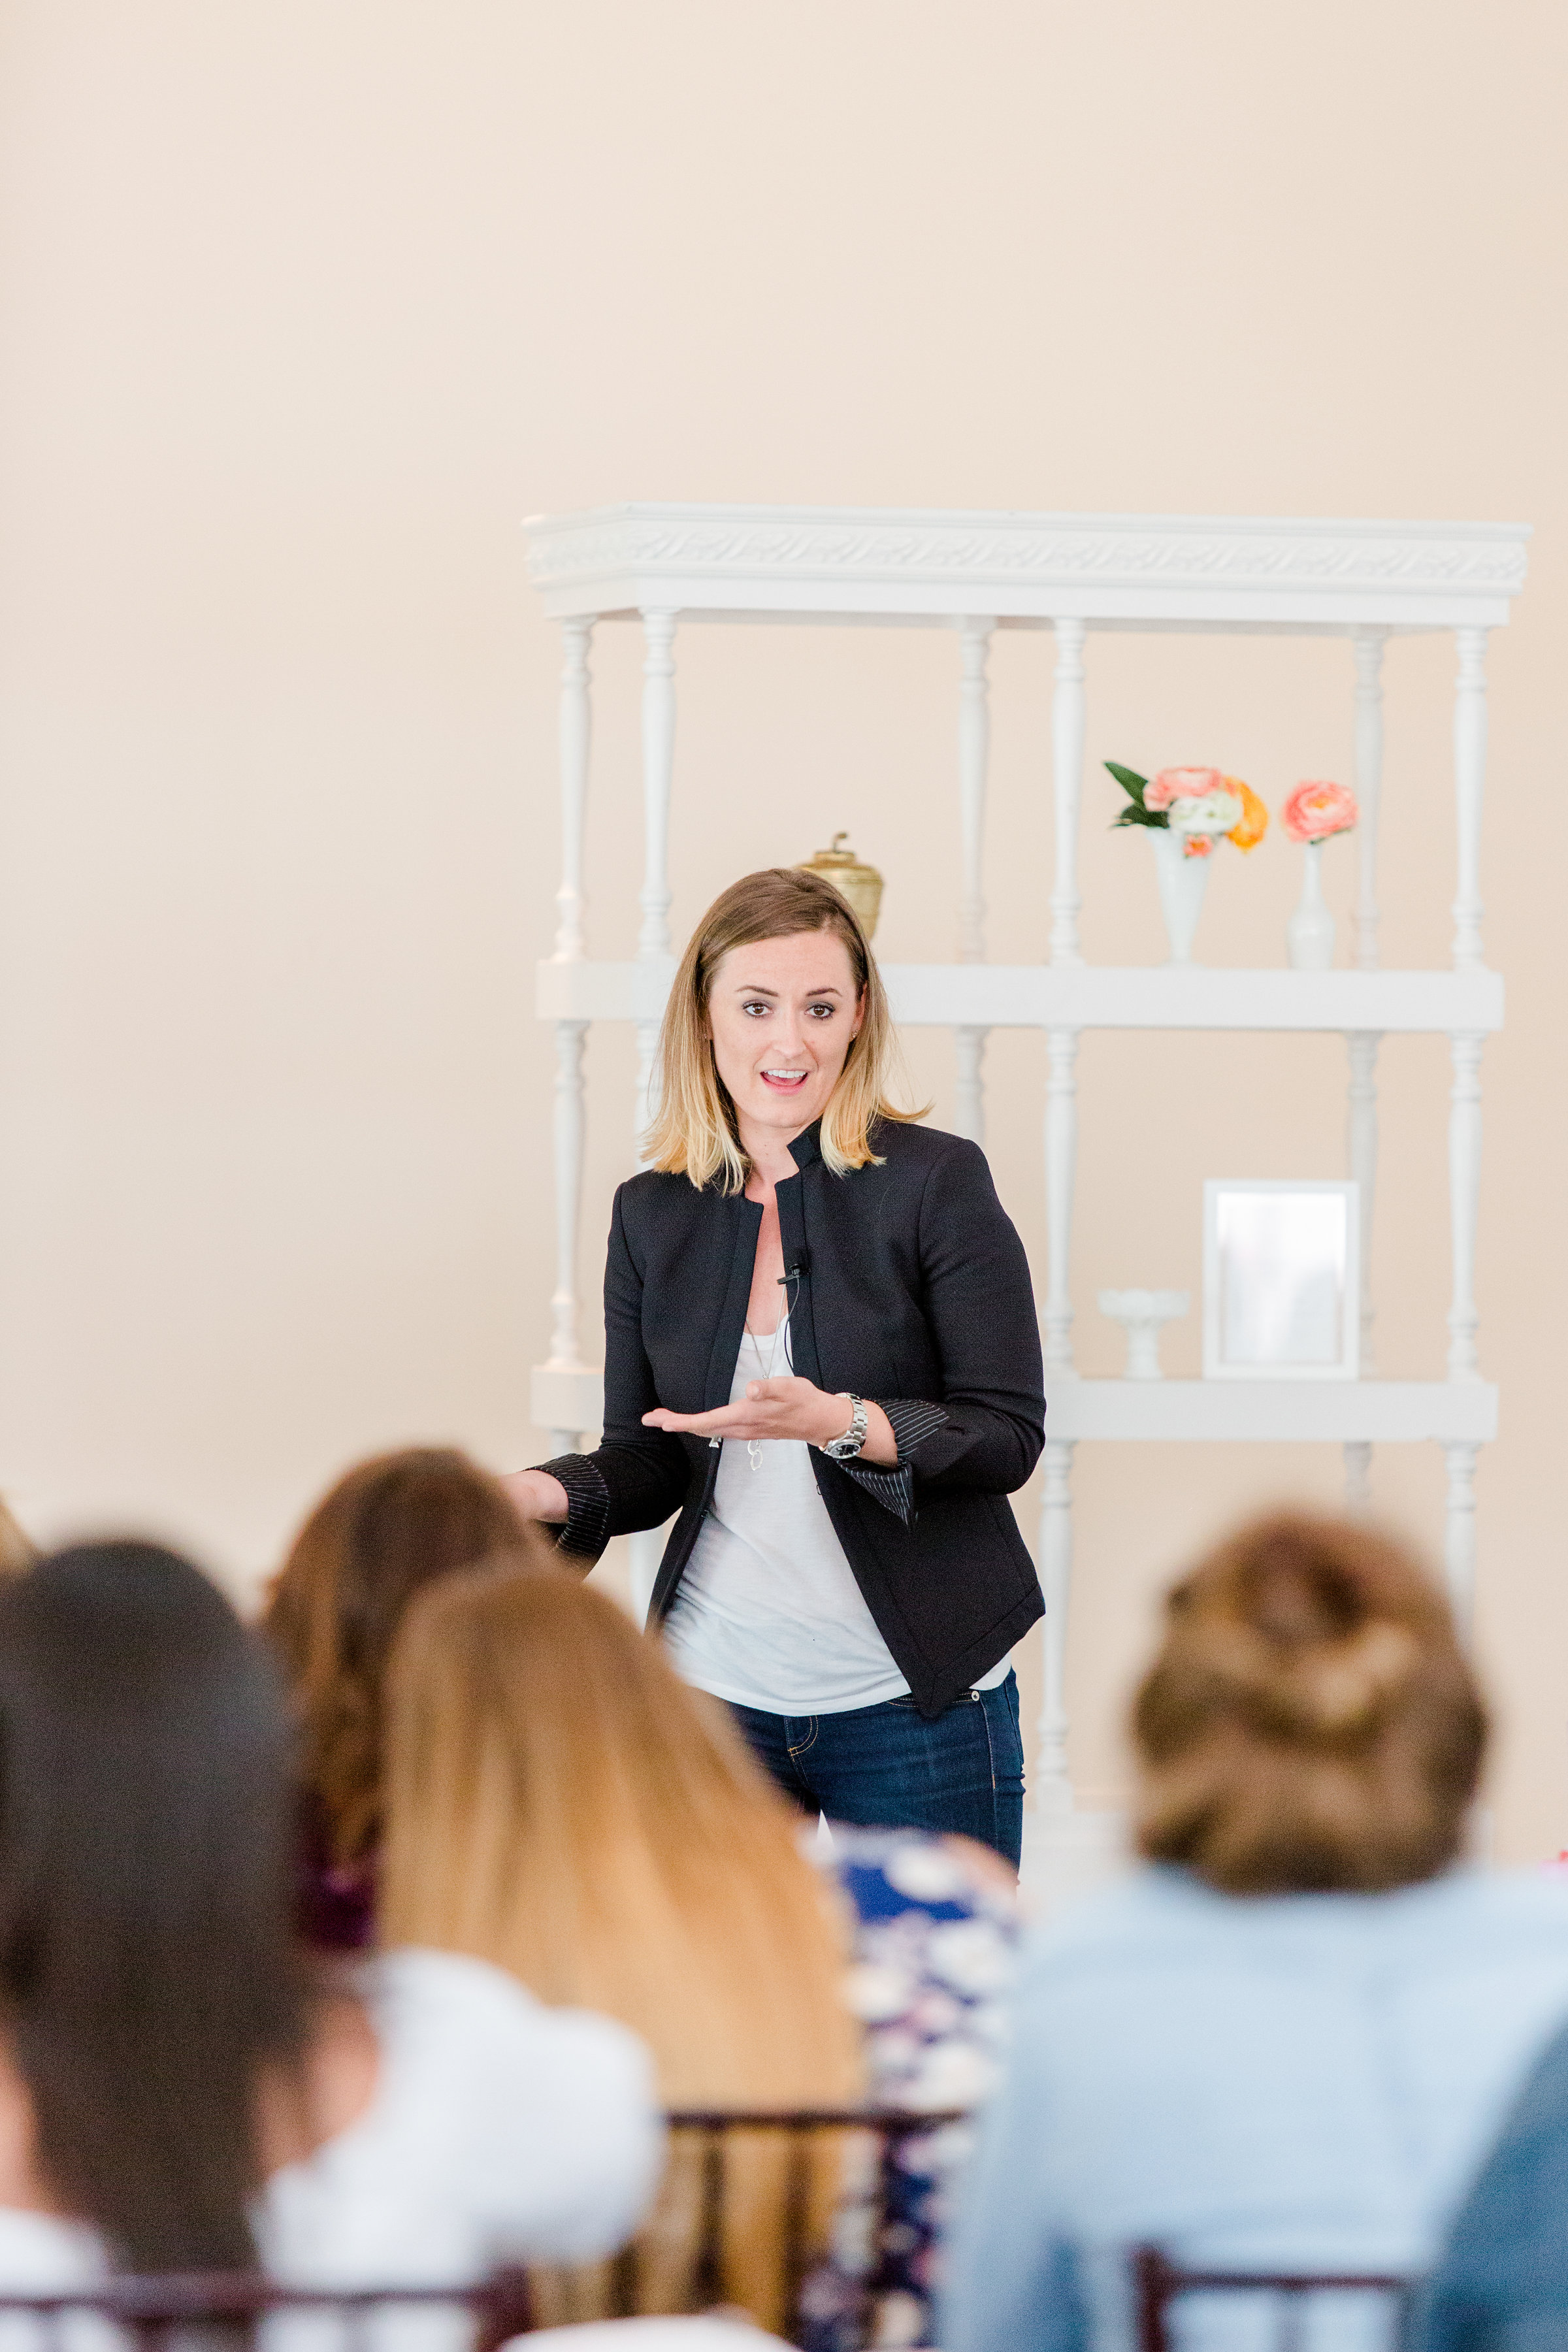 Merrimon-Wynne-Creative-At-Heart-Conference-Raleigh-North-Carolina-Holly-Felts-Photography-51.jpg